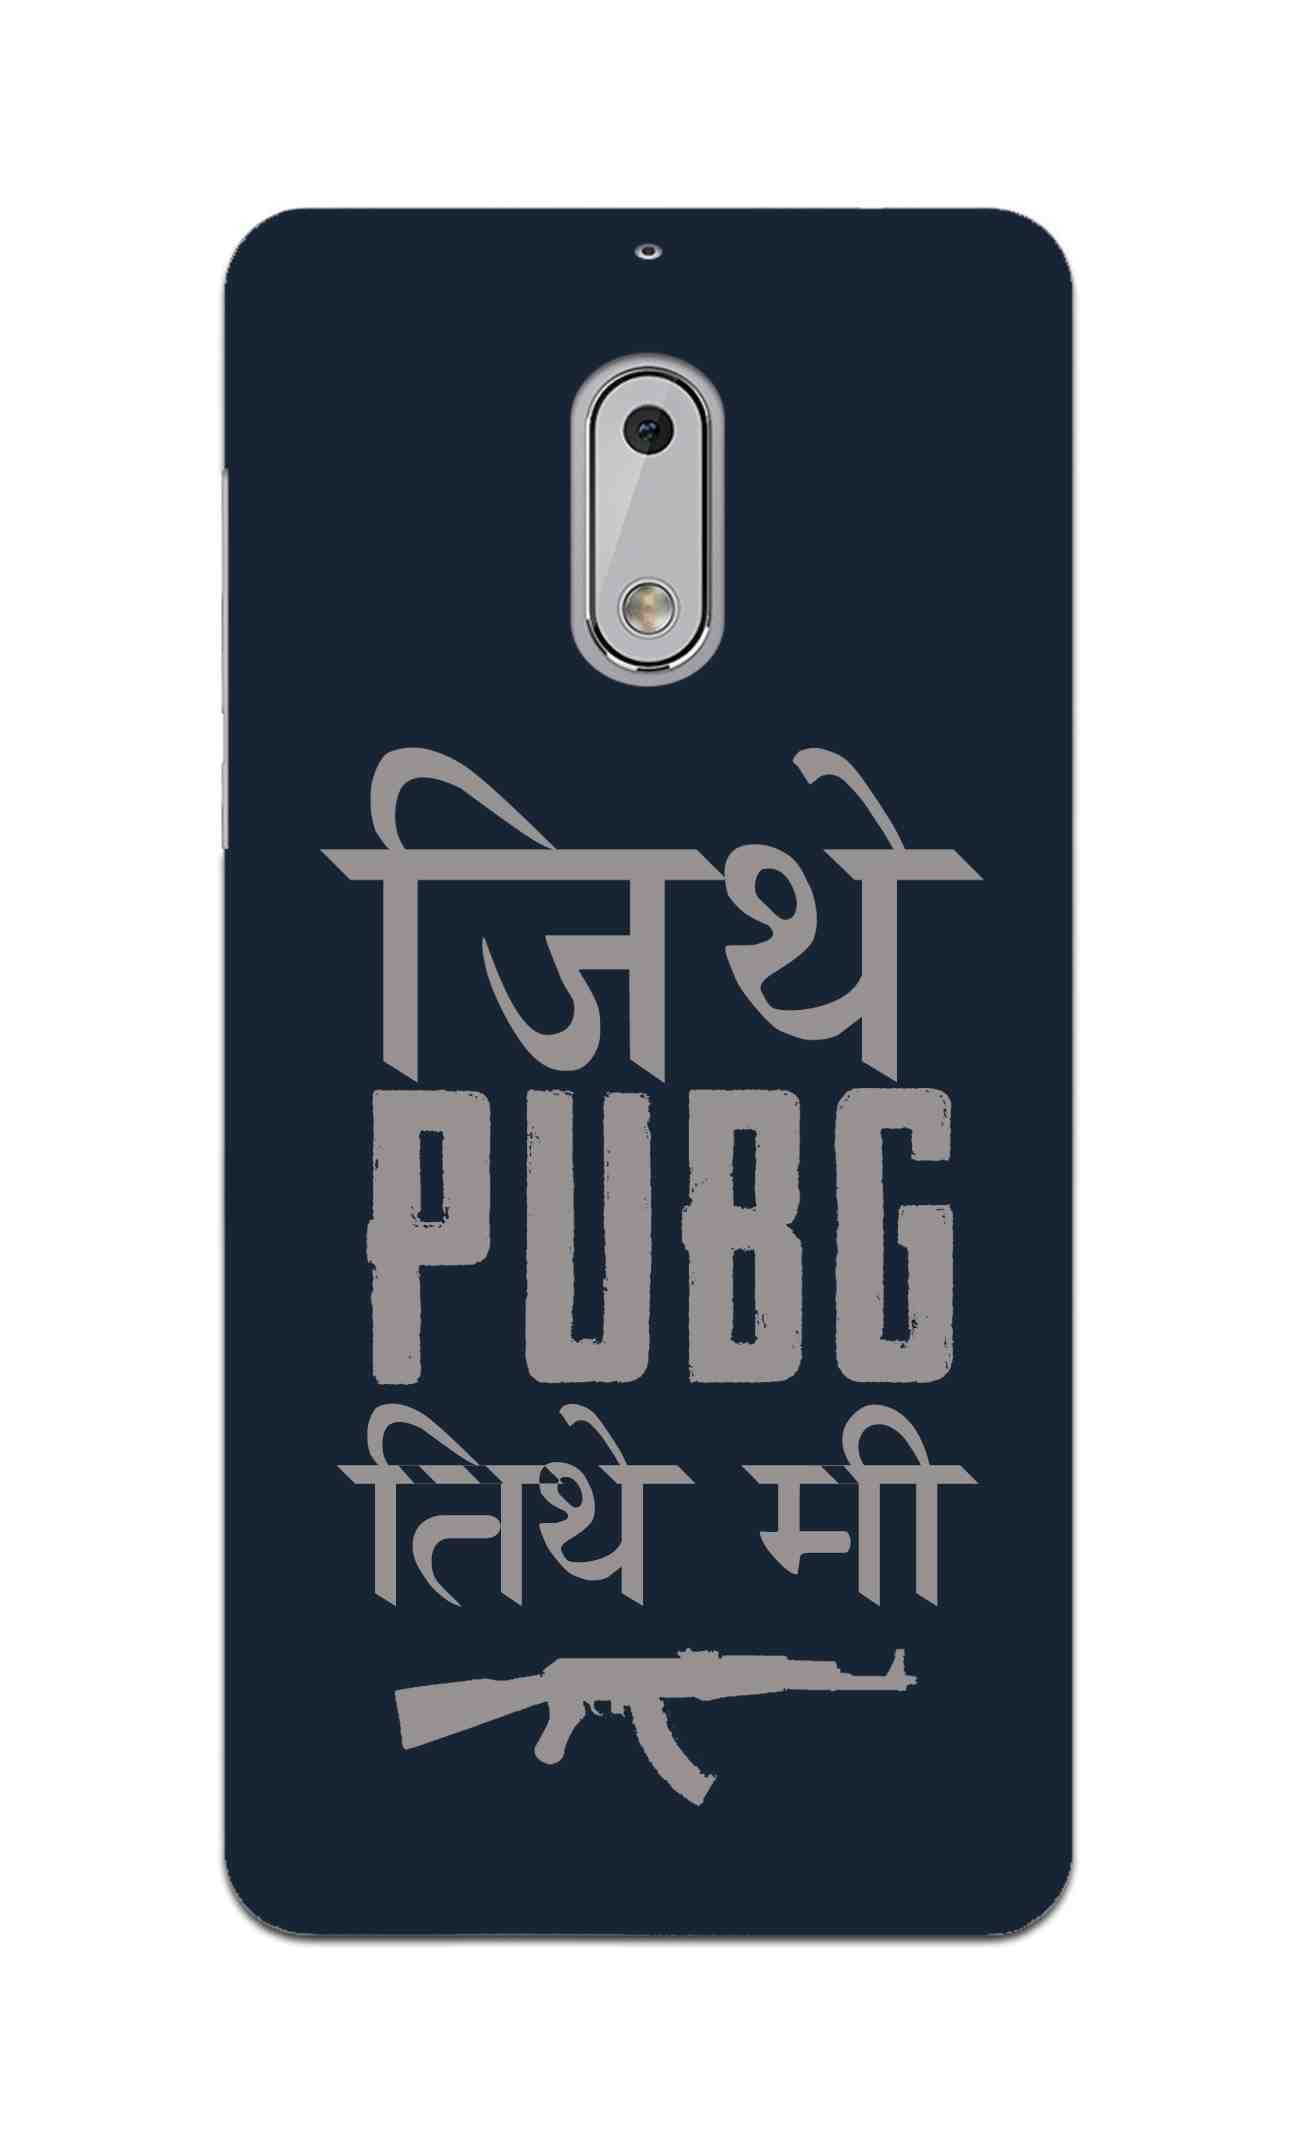 Jithe Pubg Tithe Me Game Lovers Nokia 6 Mobile Cover Case